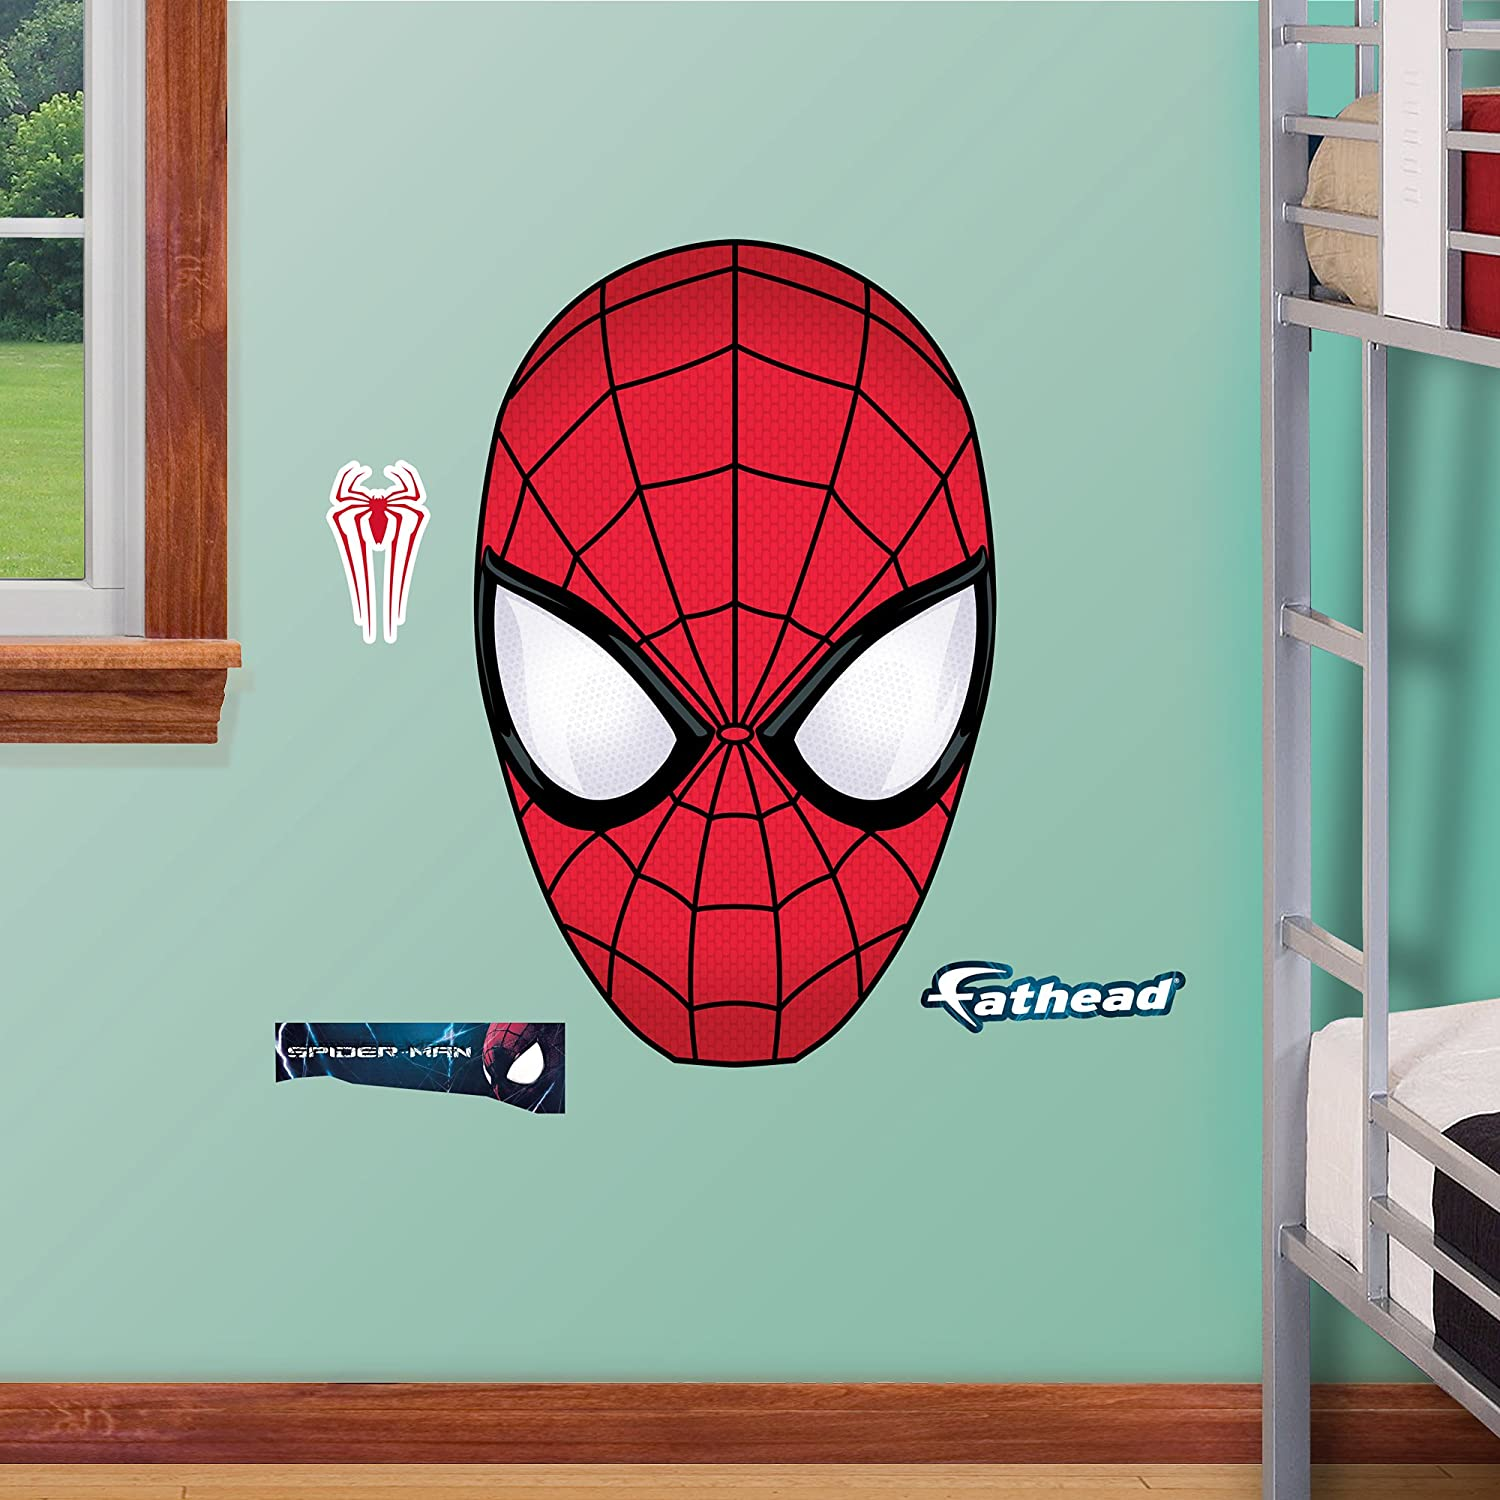 Fathead The Amazing Spider-Man 2 Mask Junior Wall Decal